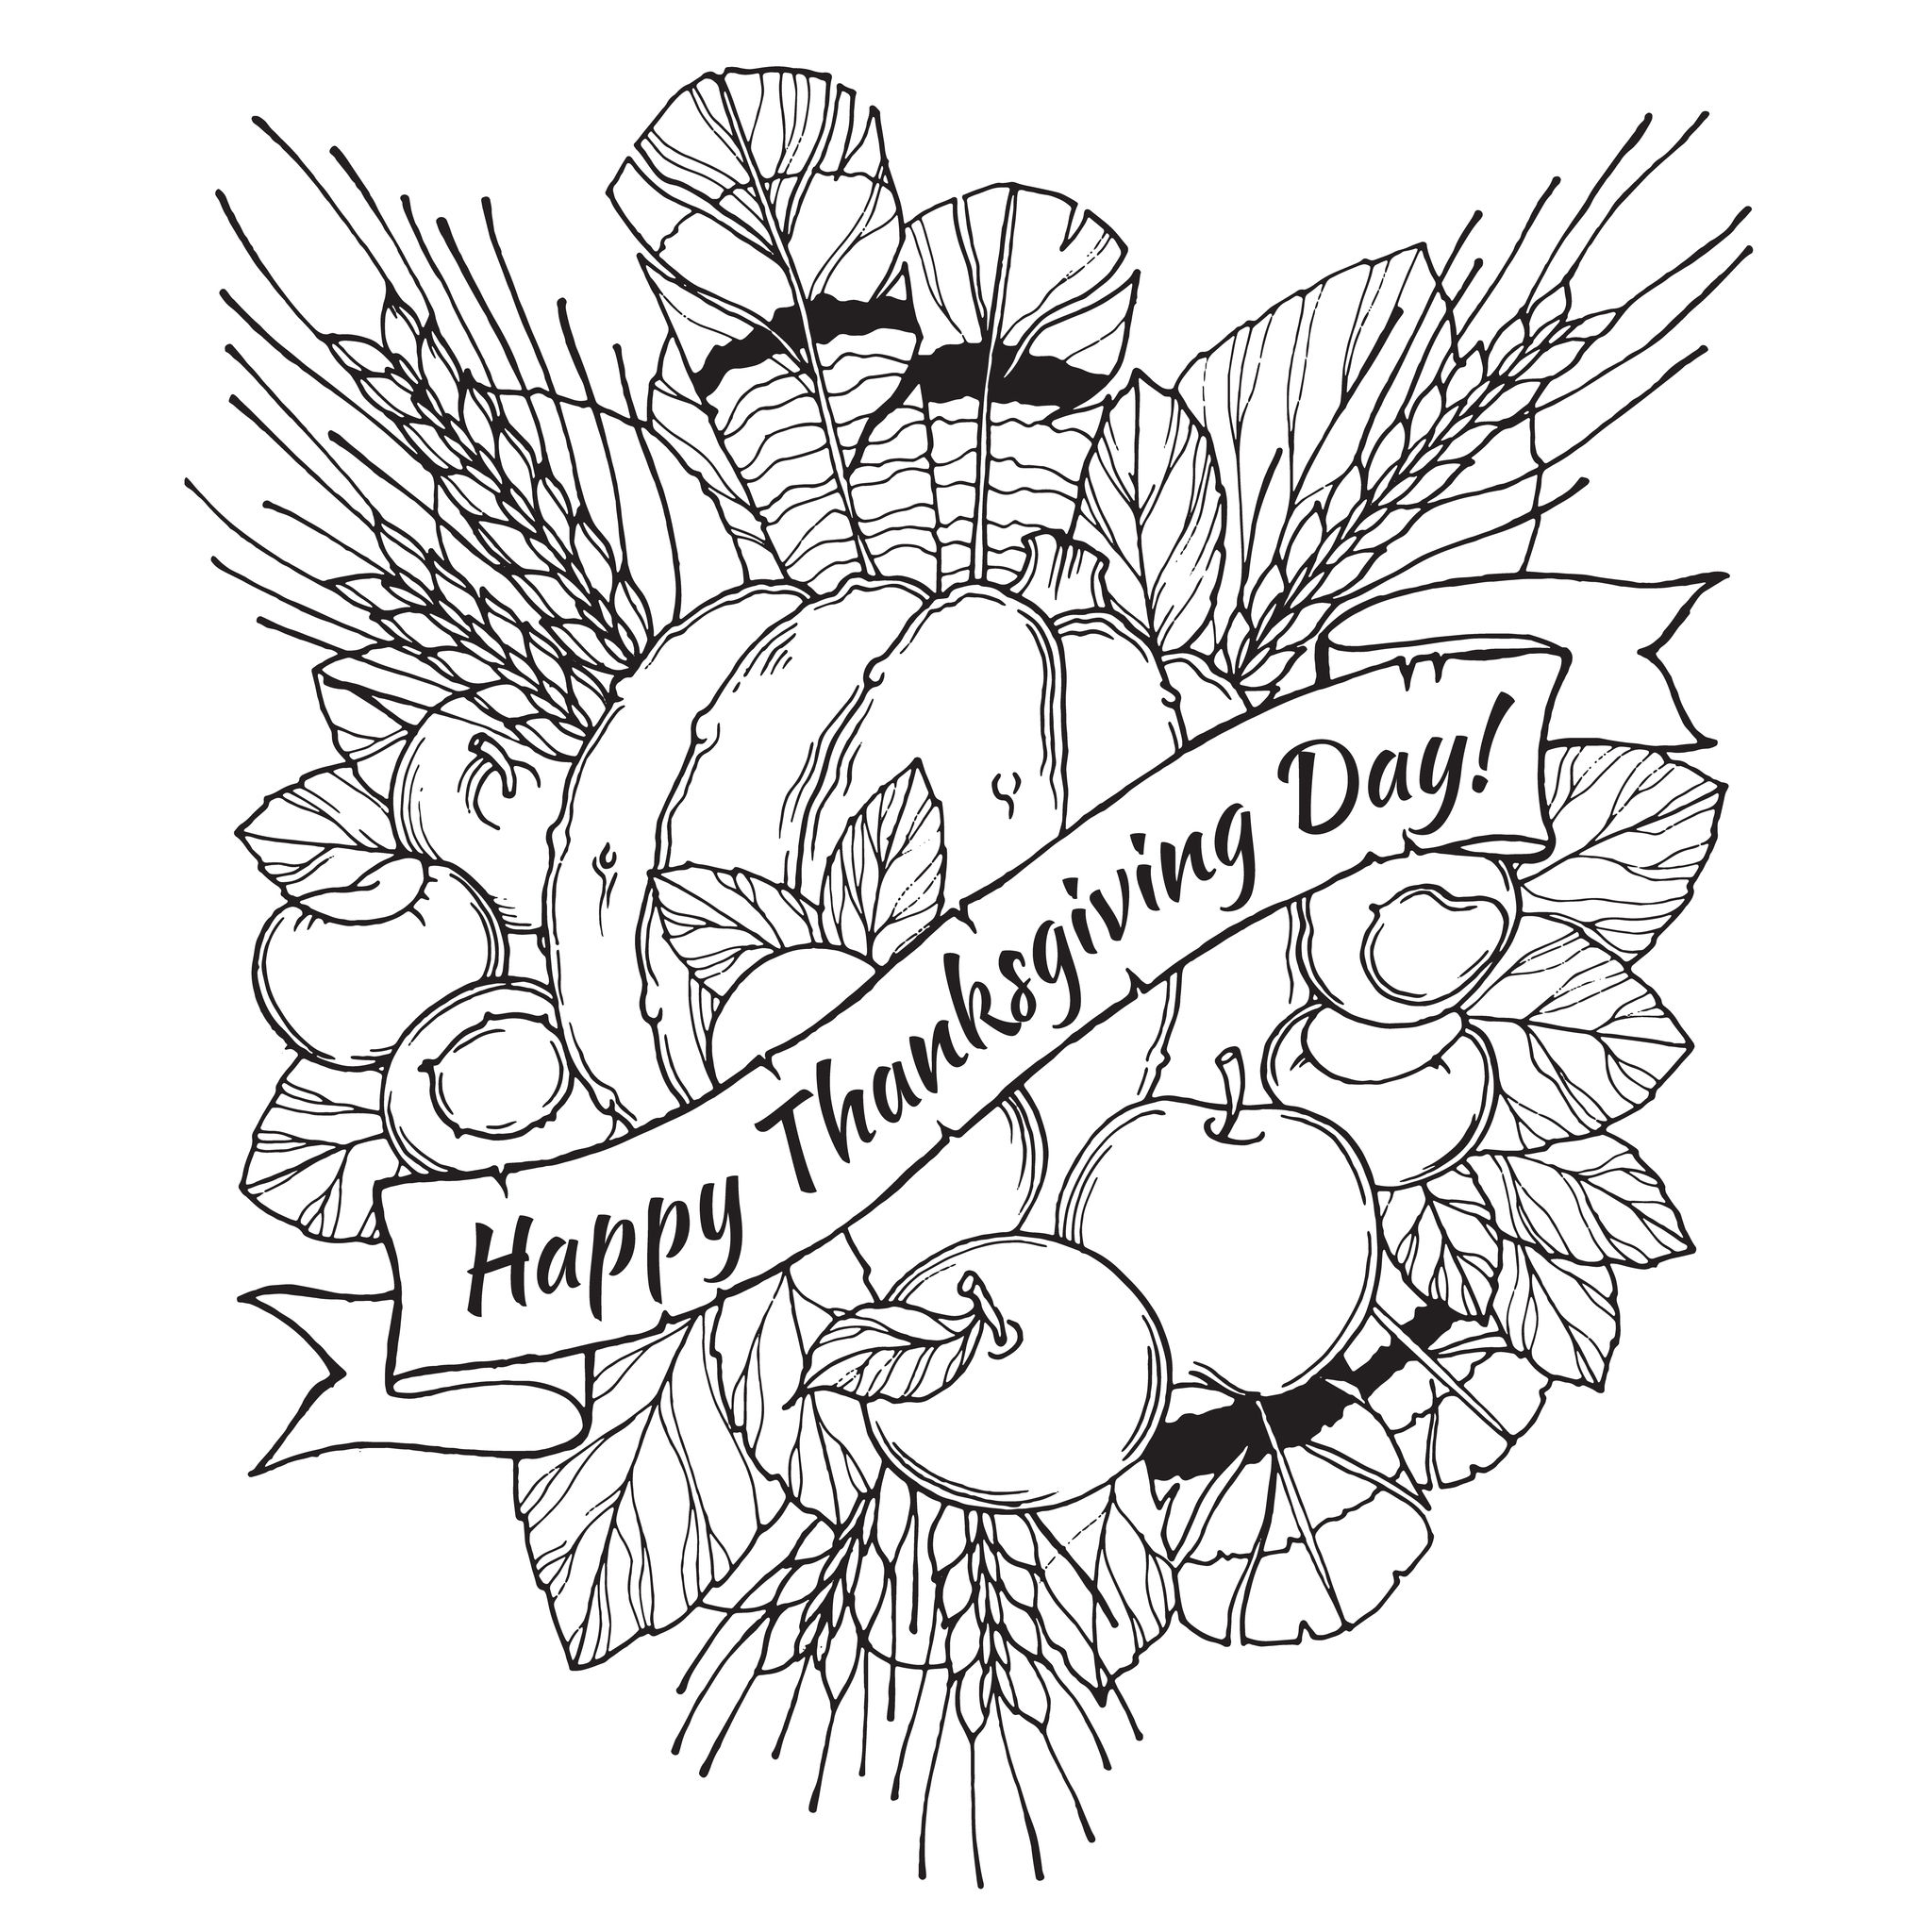 Coloring page happy thanksgiving thanksgiving day drawing to print and color with feathers chestnuts vegetables and fruits